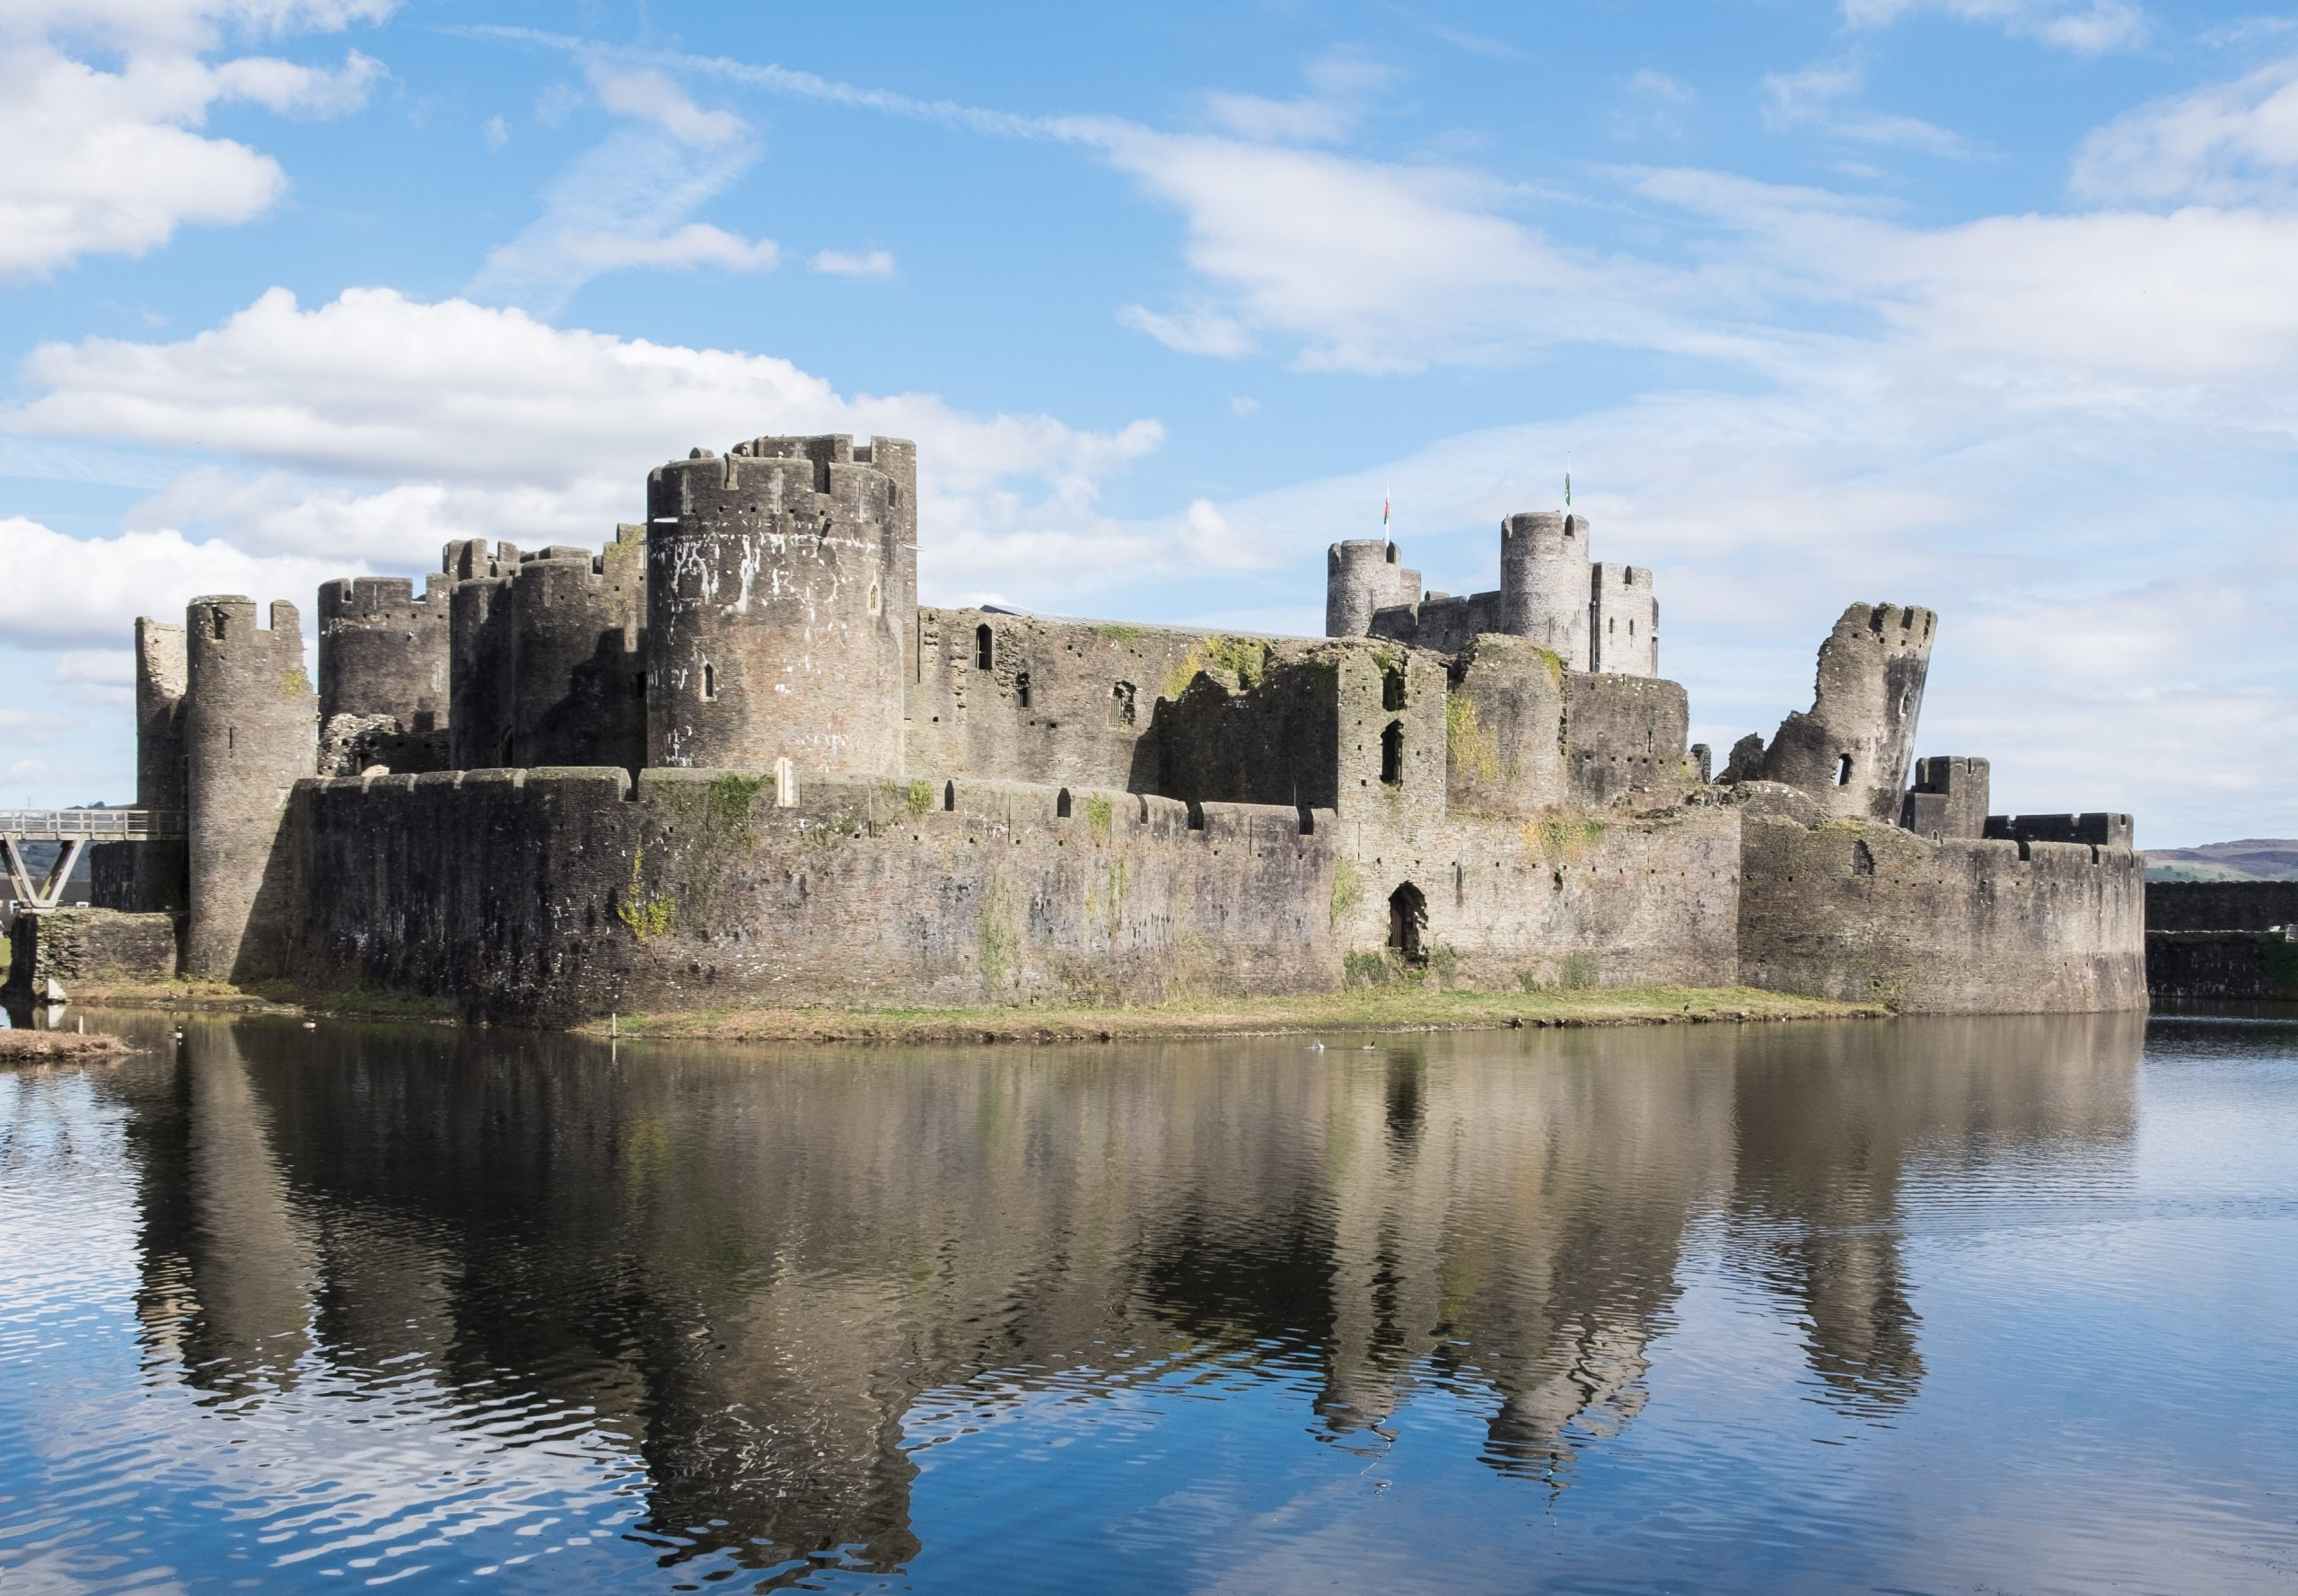 Caerphilly Castle is one of several venues that have closed